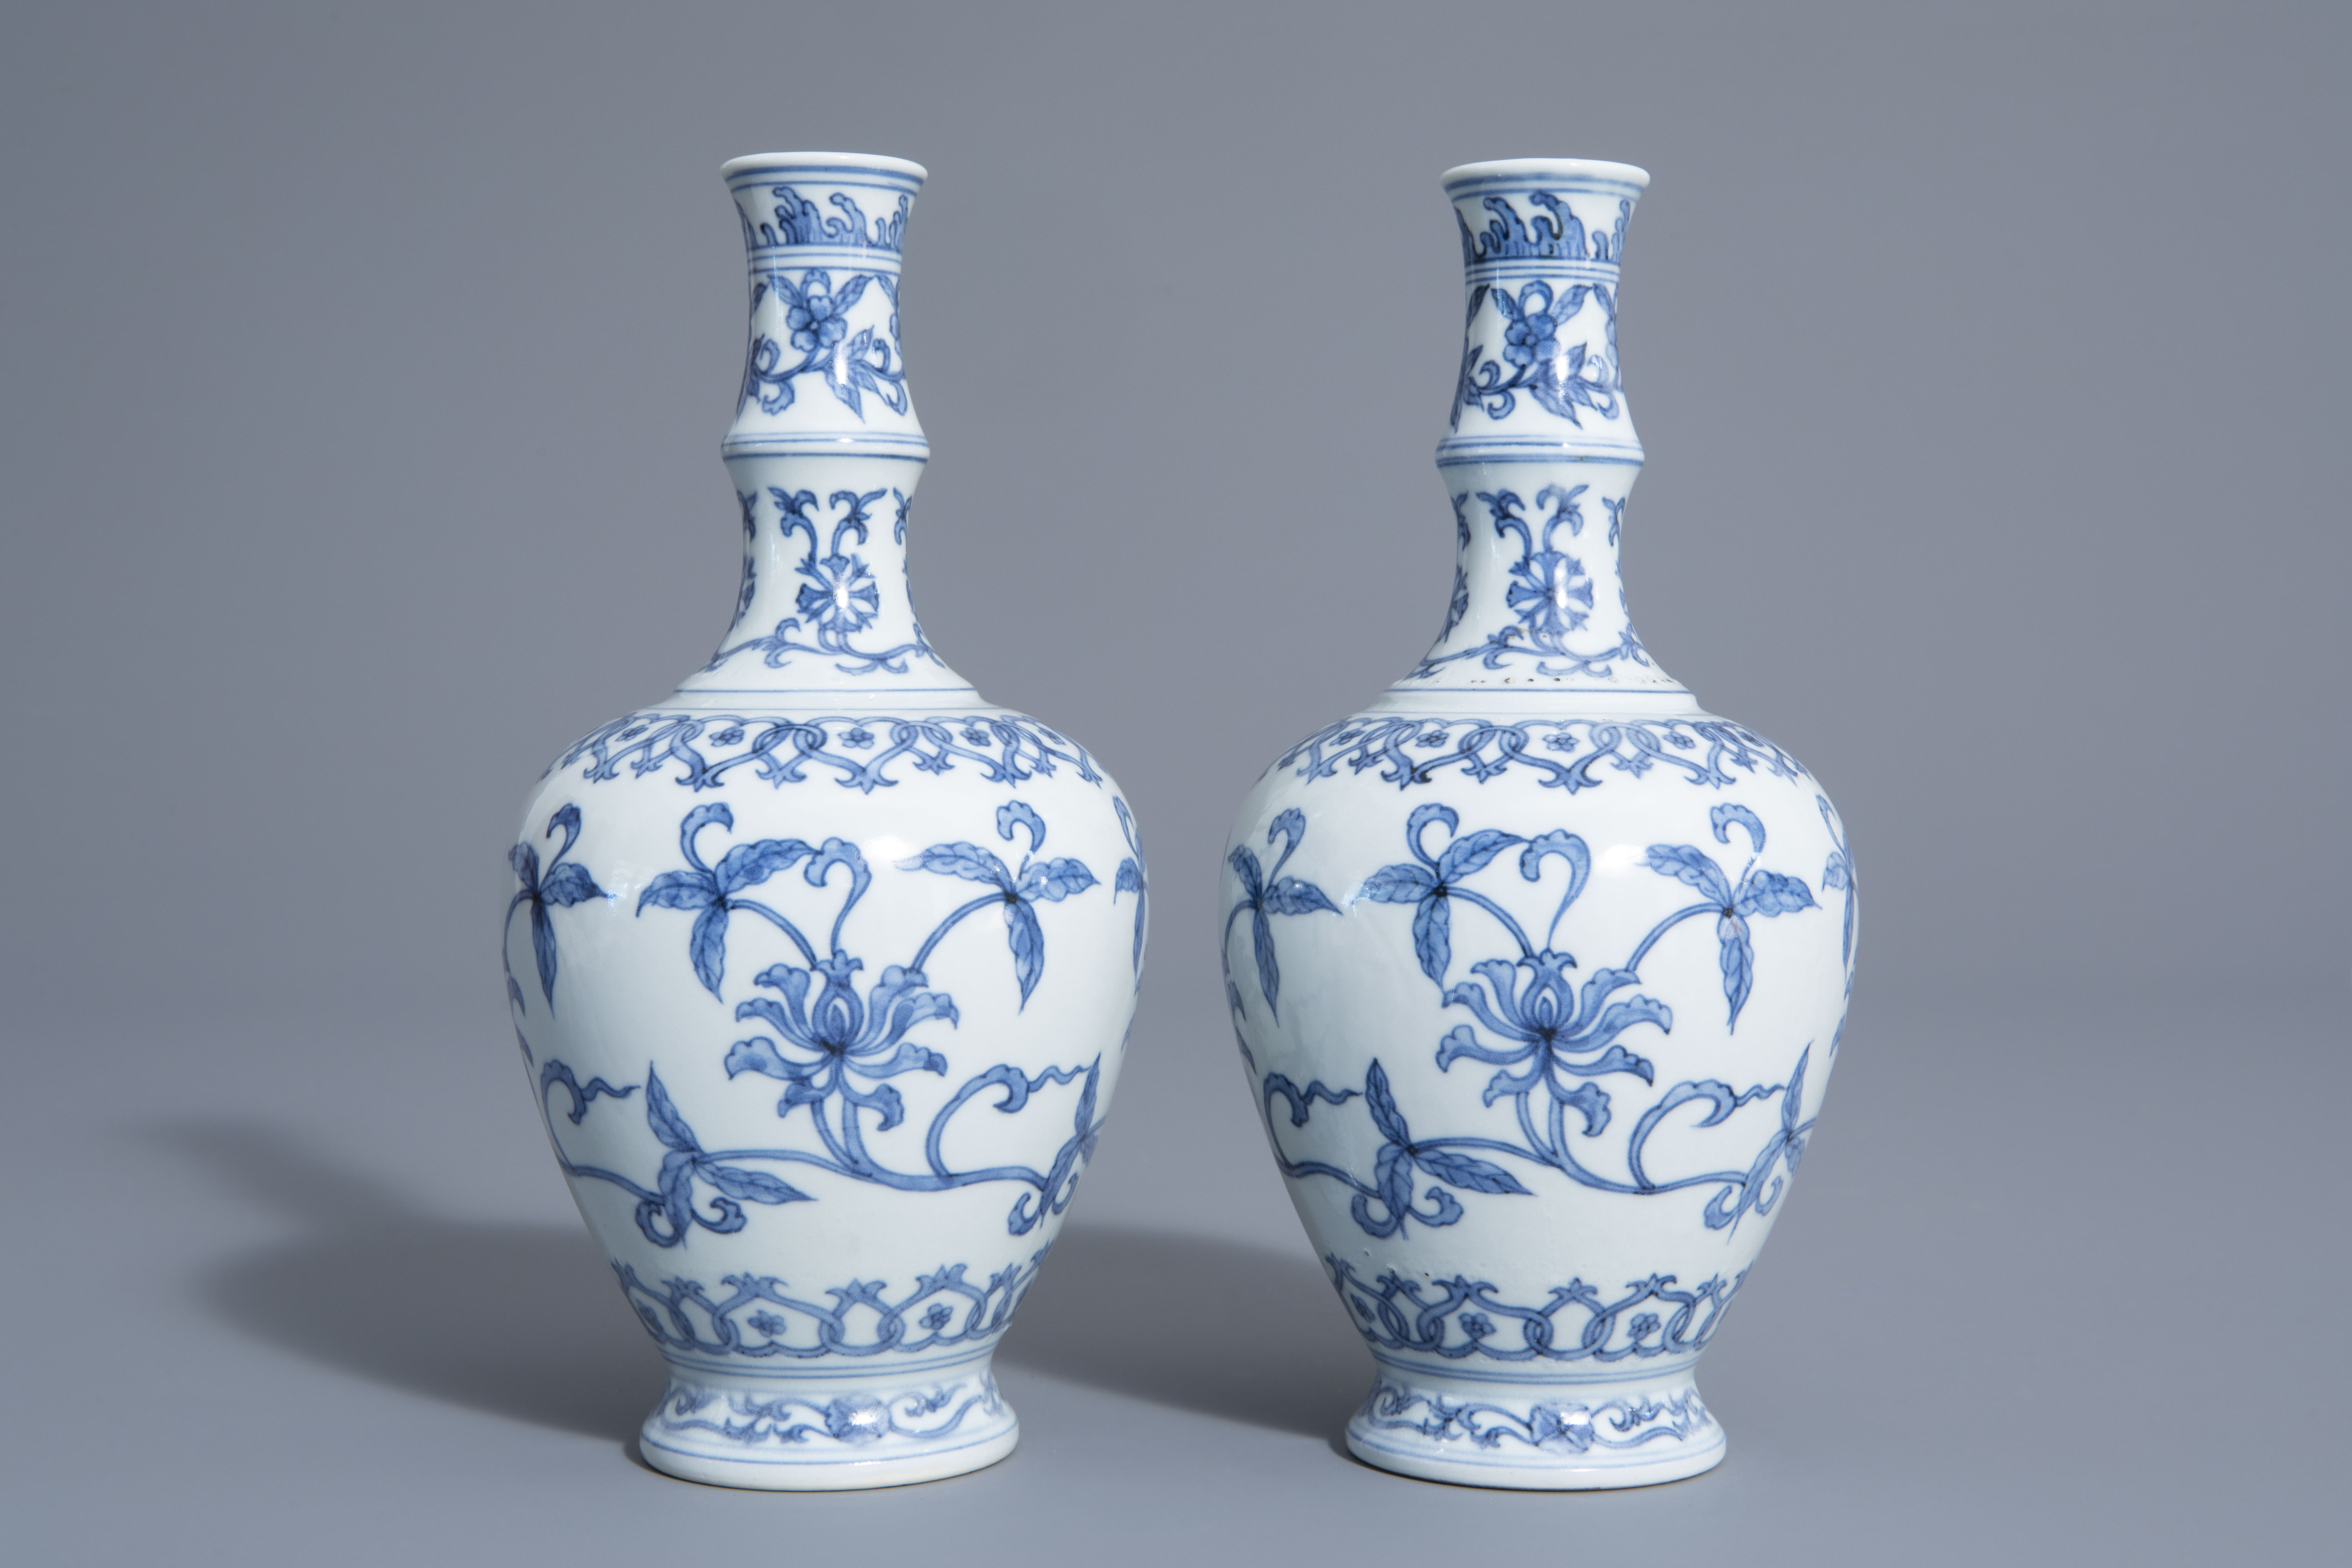 A pair of Chinese blue and white vases with floral design, Chenghua mark, 19th/20th C. - Image 2 of 6